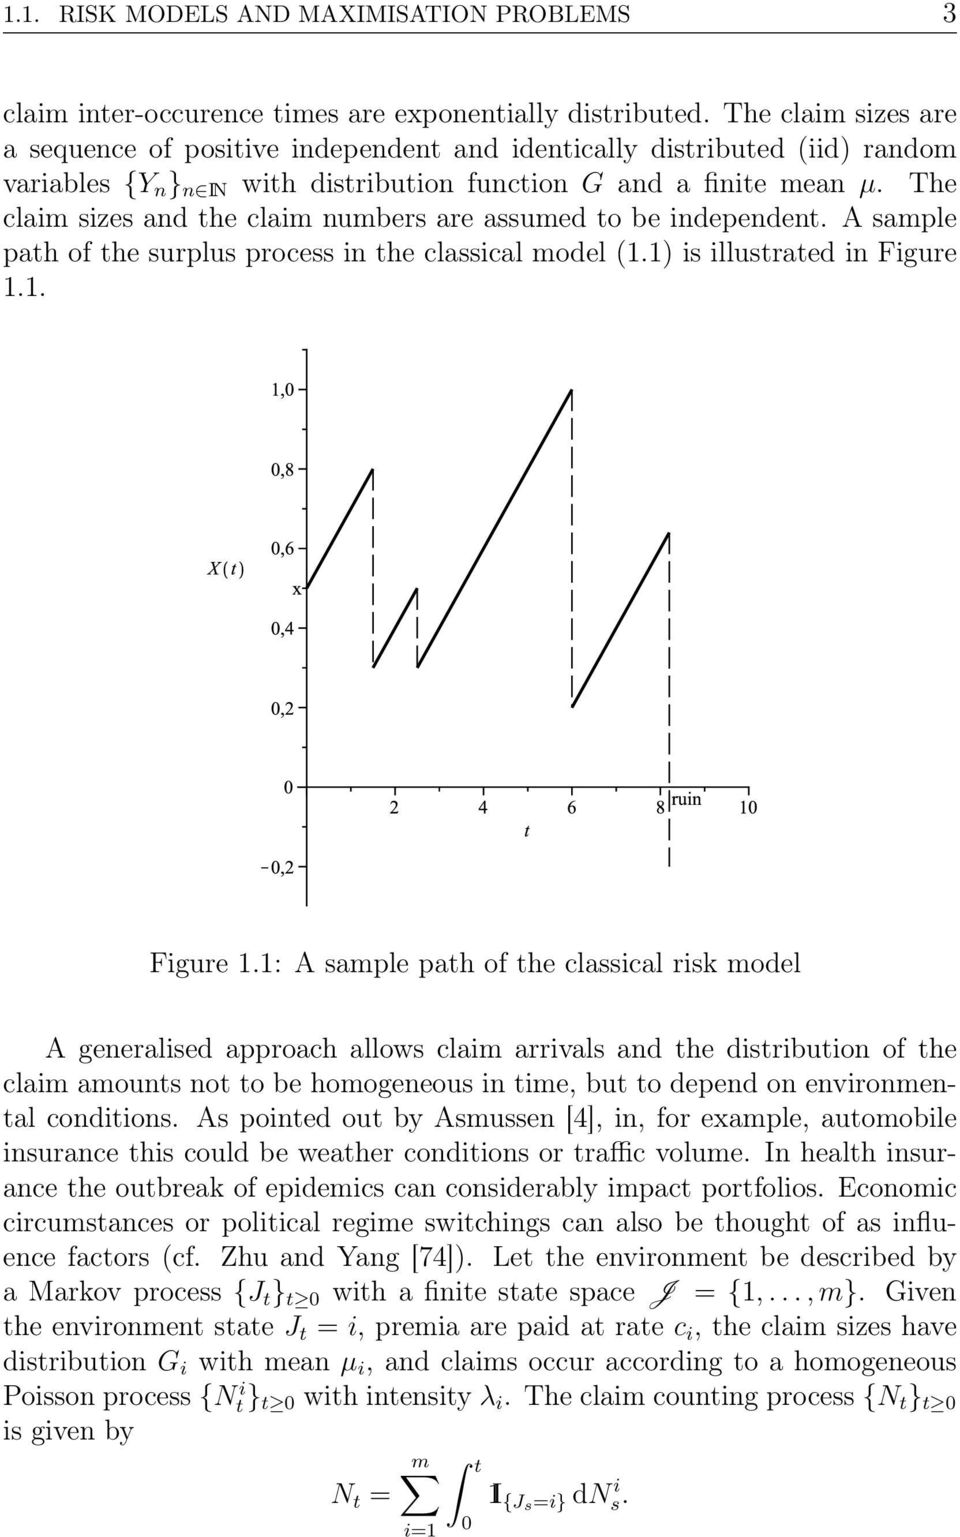 The claim sizes and the claim numbers are assumed to be independent. A sample path of the surplus process in the classical model (1.1) is illustrated in Figure 1.